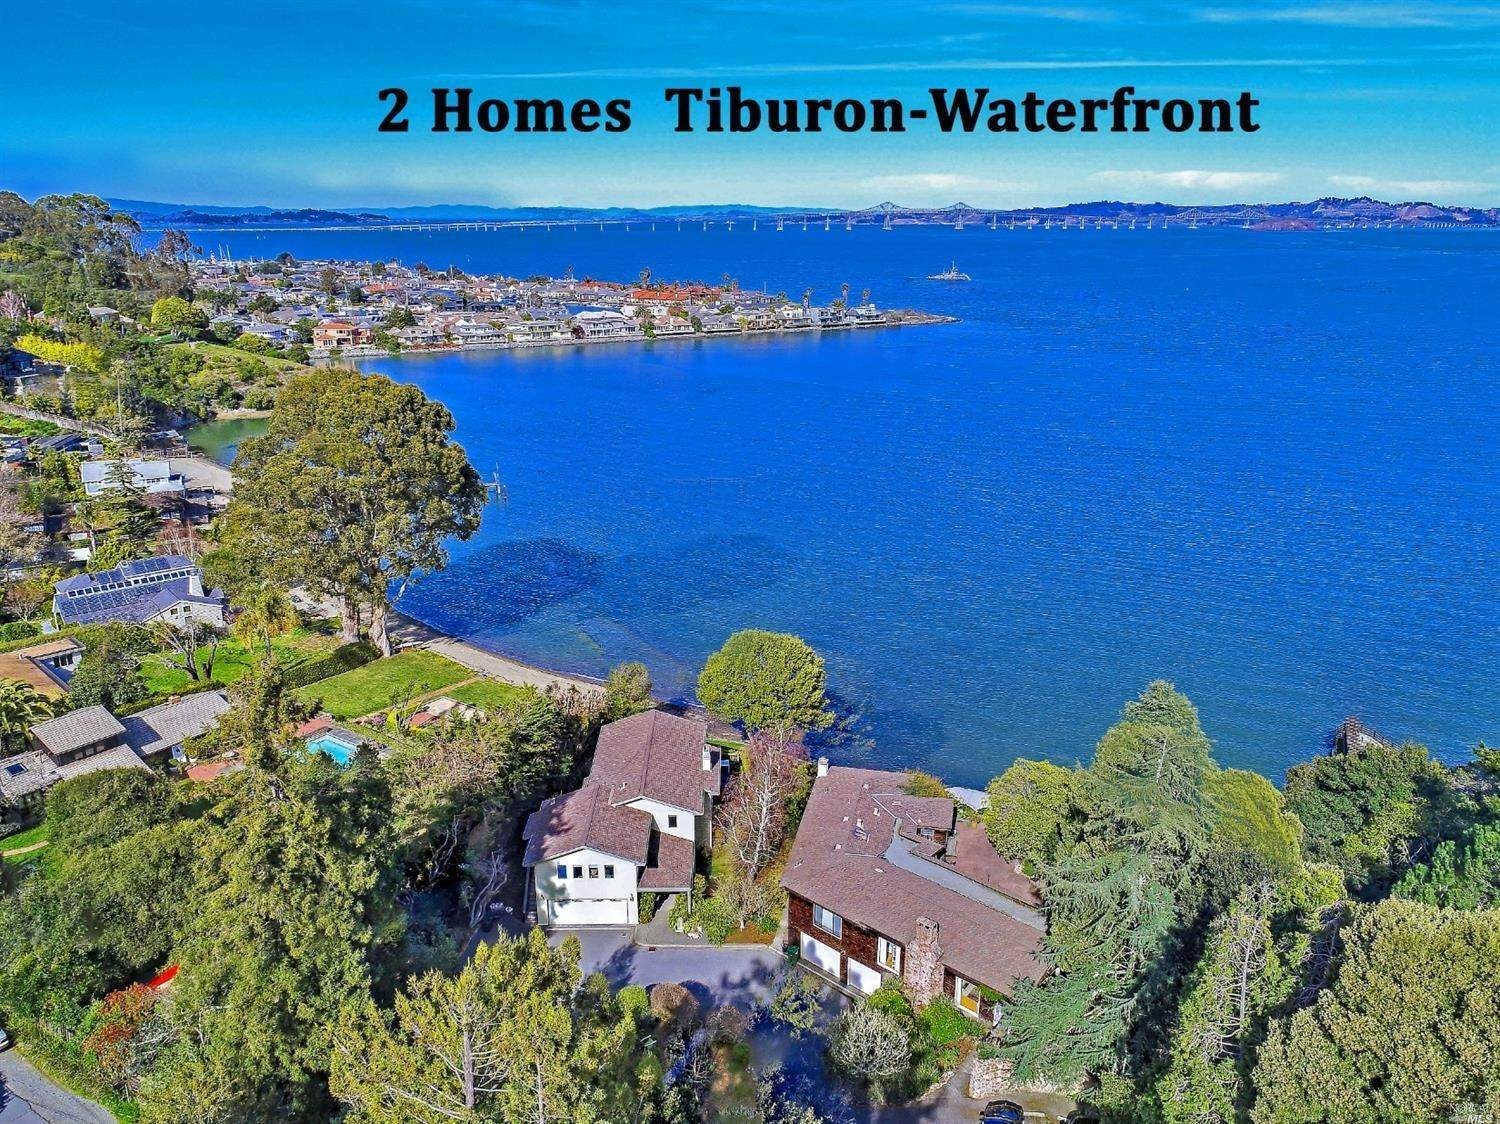 Single Family Homes for Sale at 20 Old Landing Road Tiburon, California 94920 United States